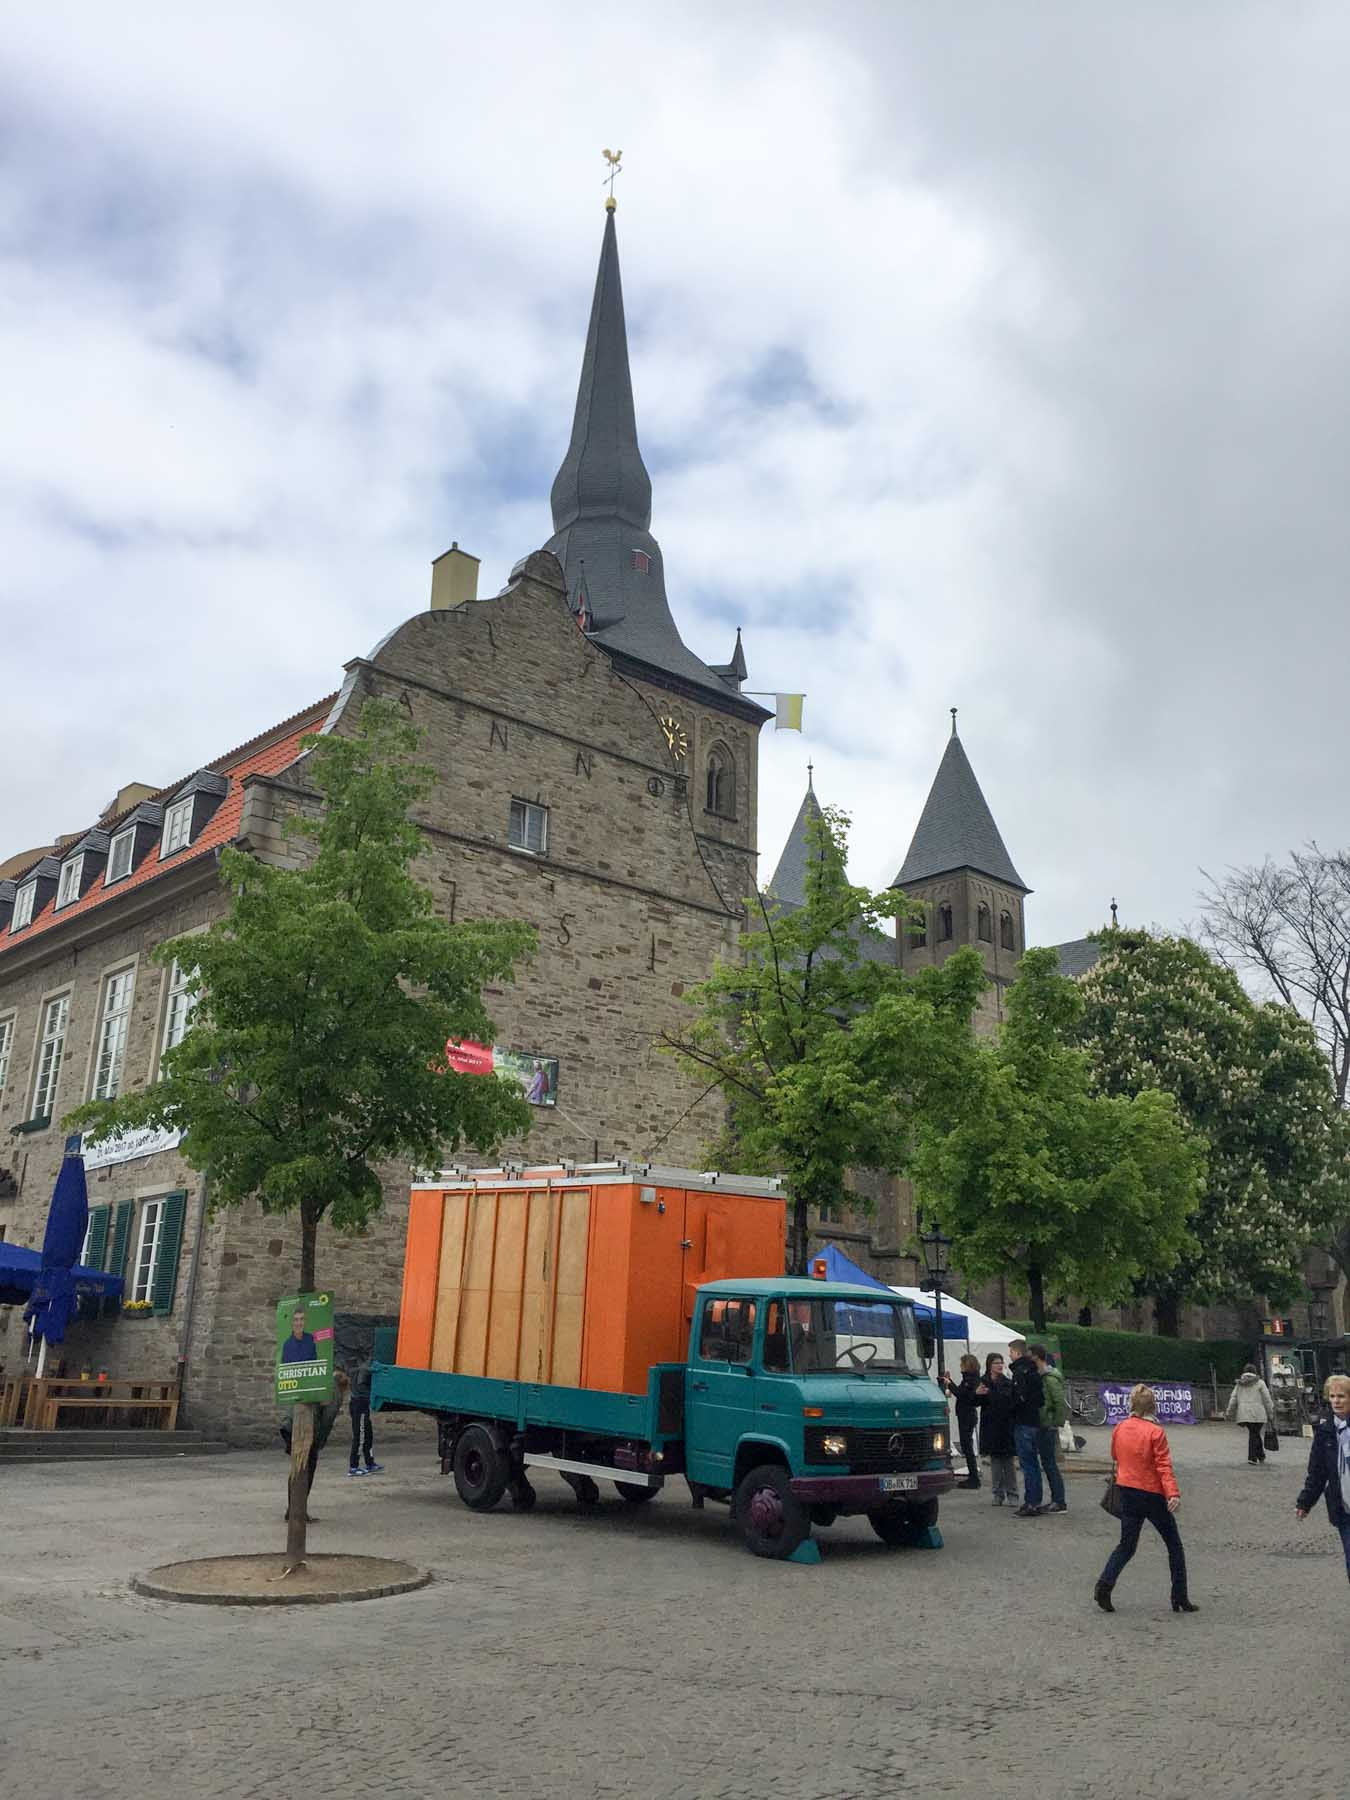 Arrival at the Ratinger Marktplatz